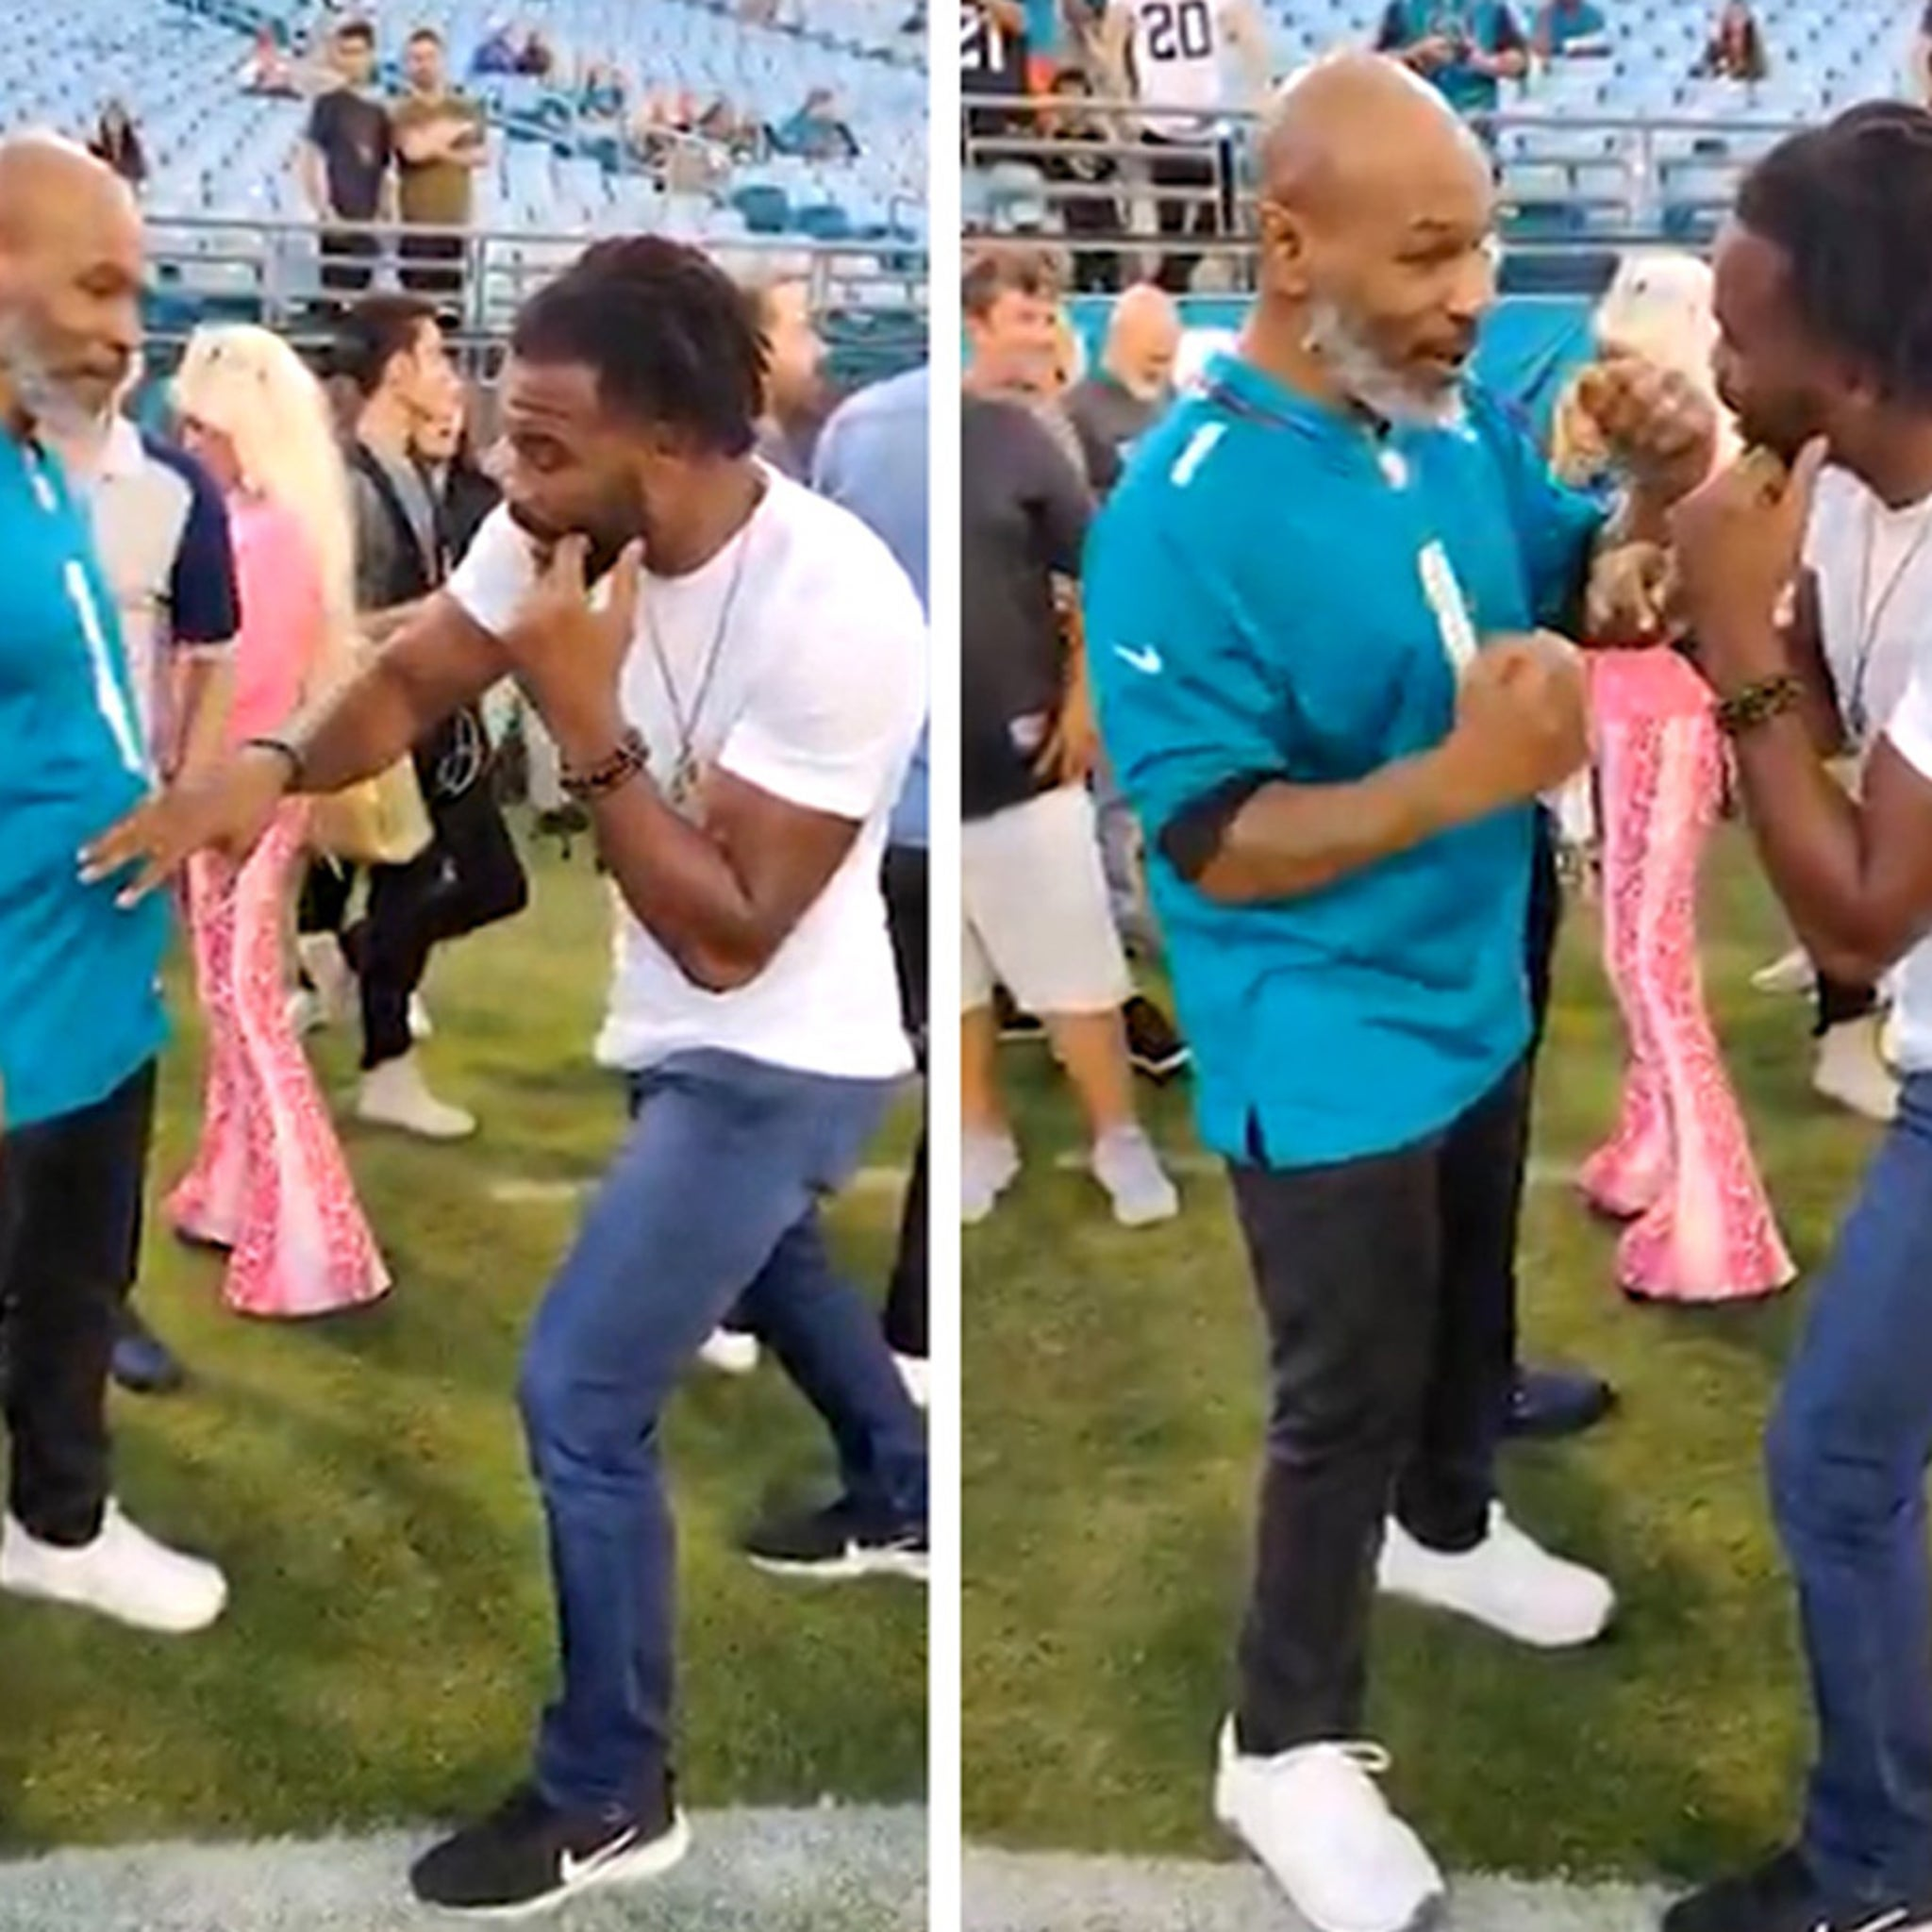 Mike Tyson Gives Sideline Fight Clinic to UFC Hall of Famer at NFL Game